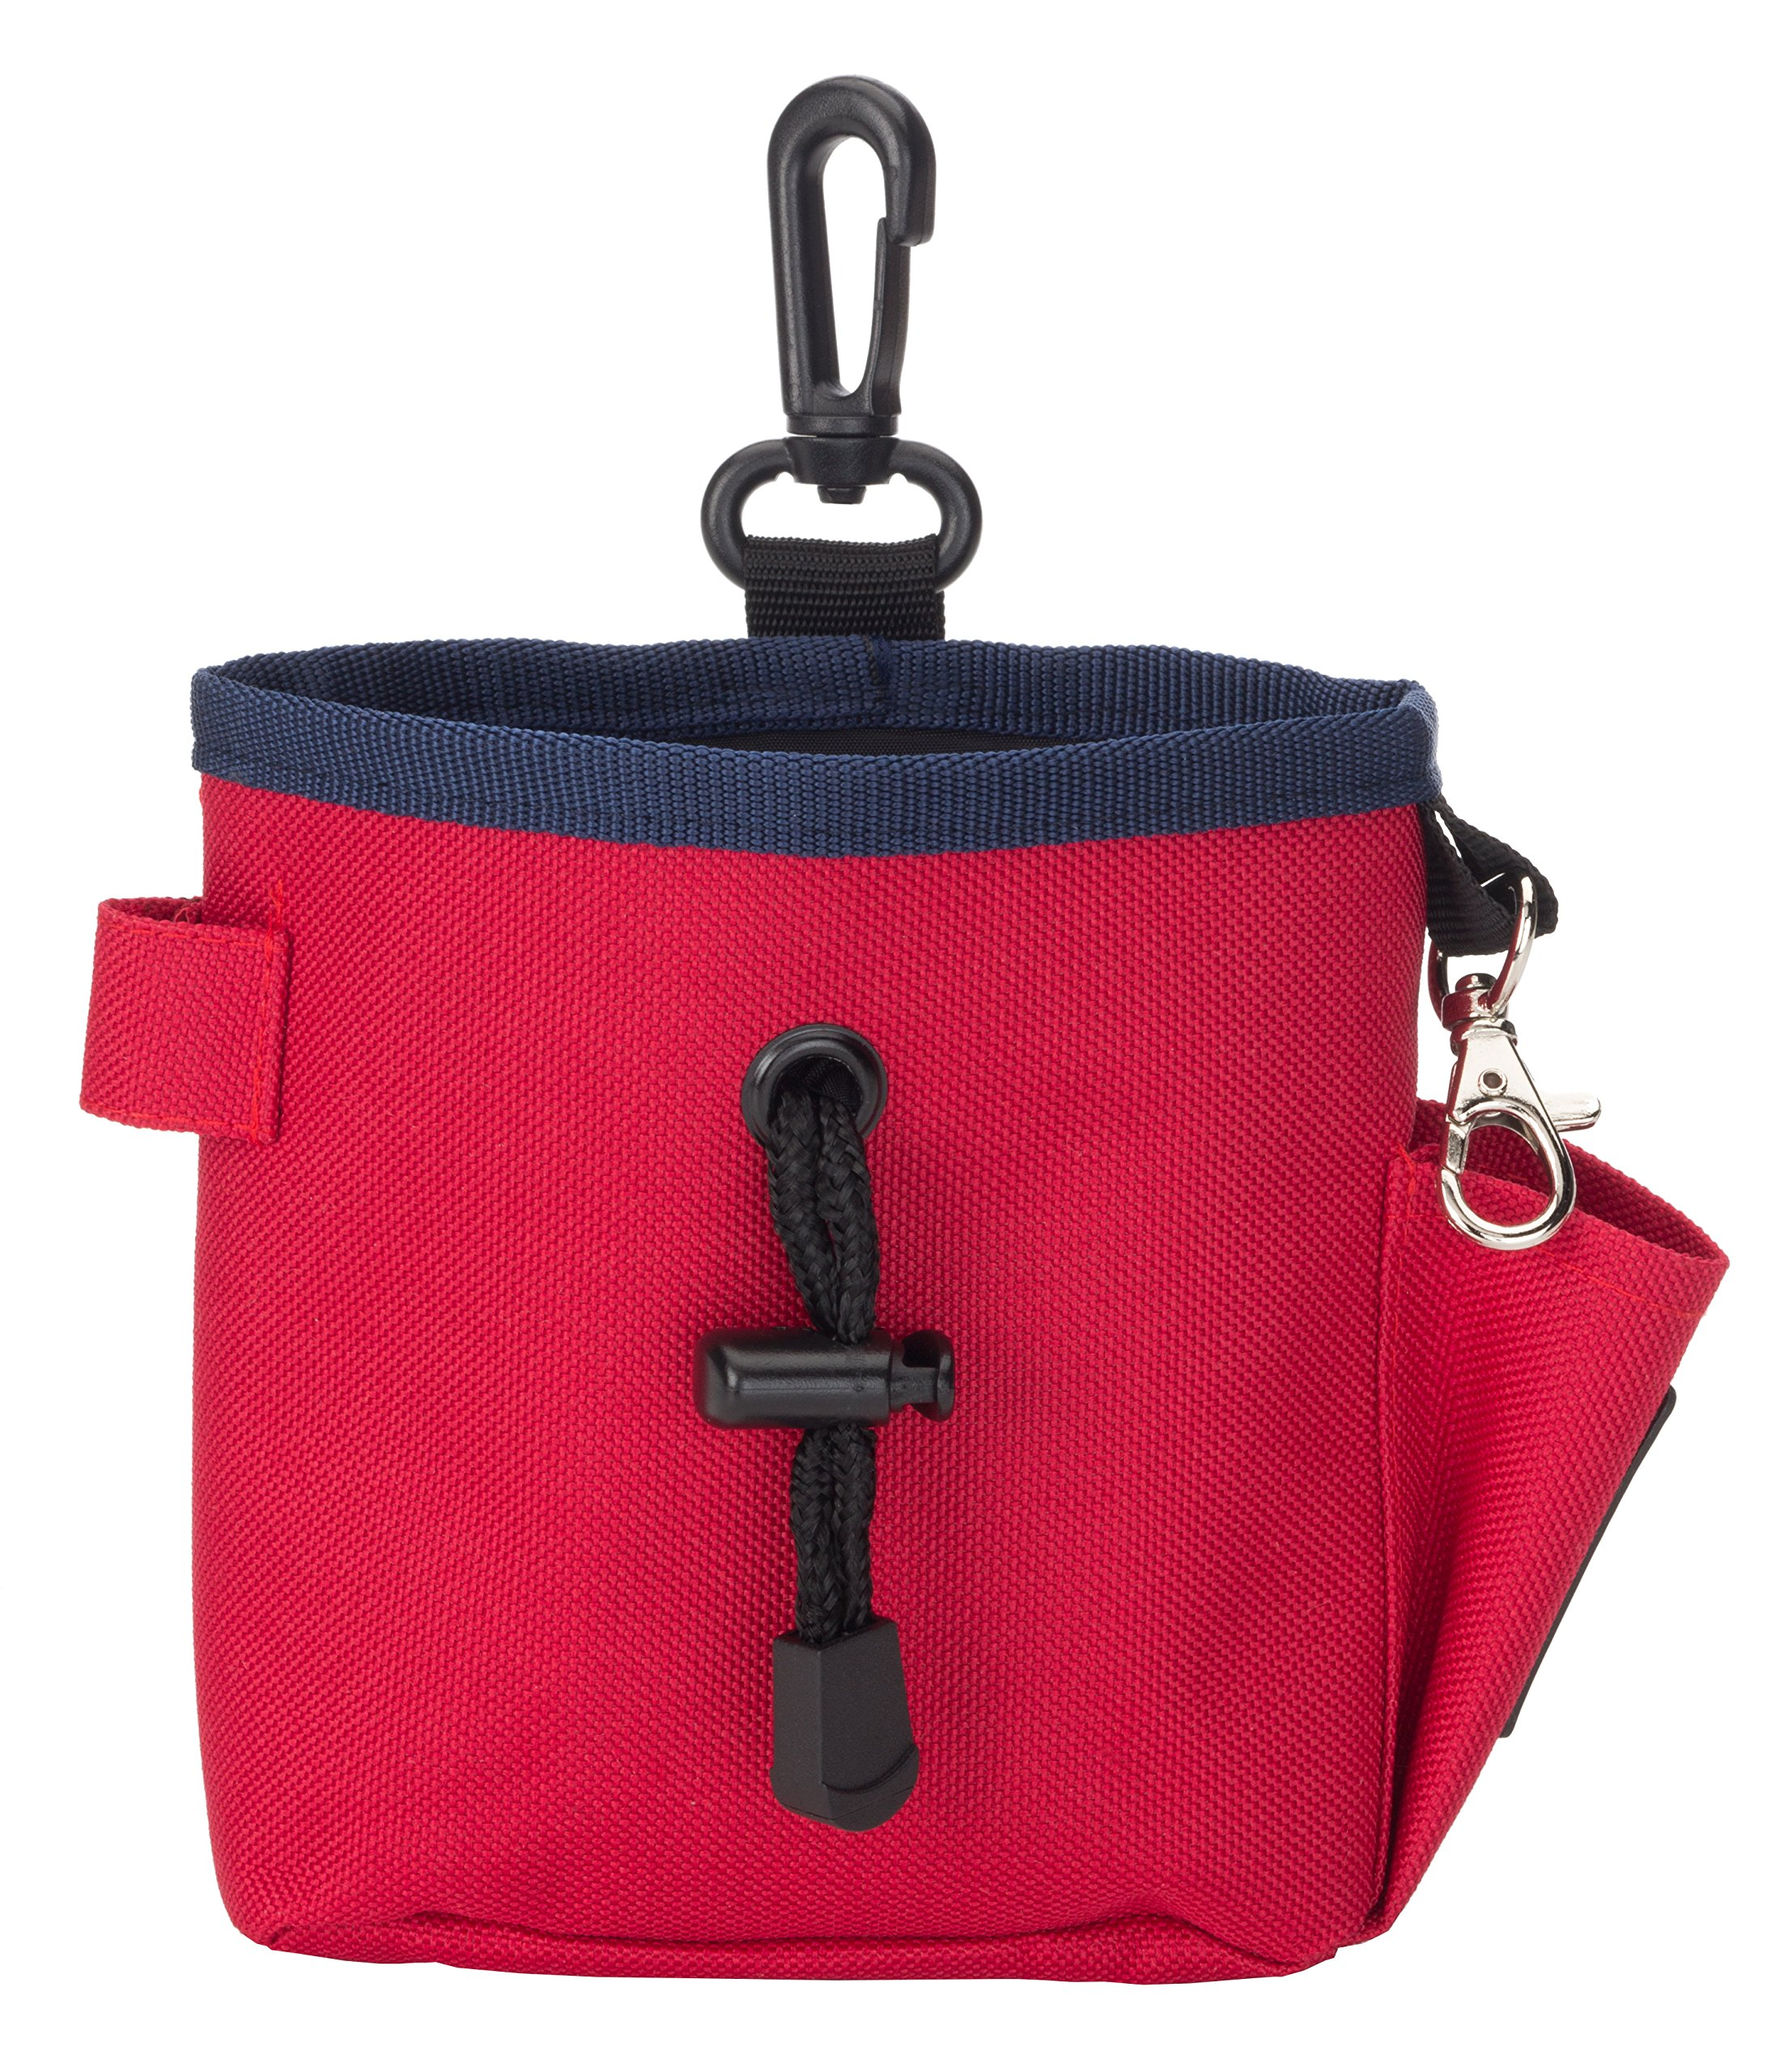 The Company of Animals - CLIX Treat Bag - Hand-Free Storage for Treats, Toys, Training Accessories and Personal Items - Red